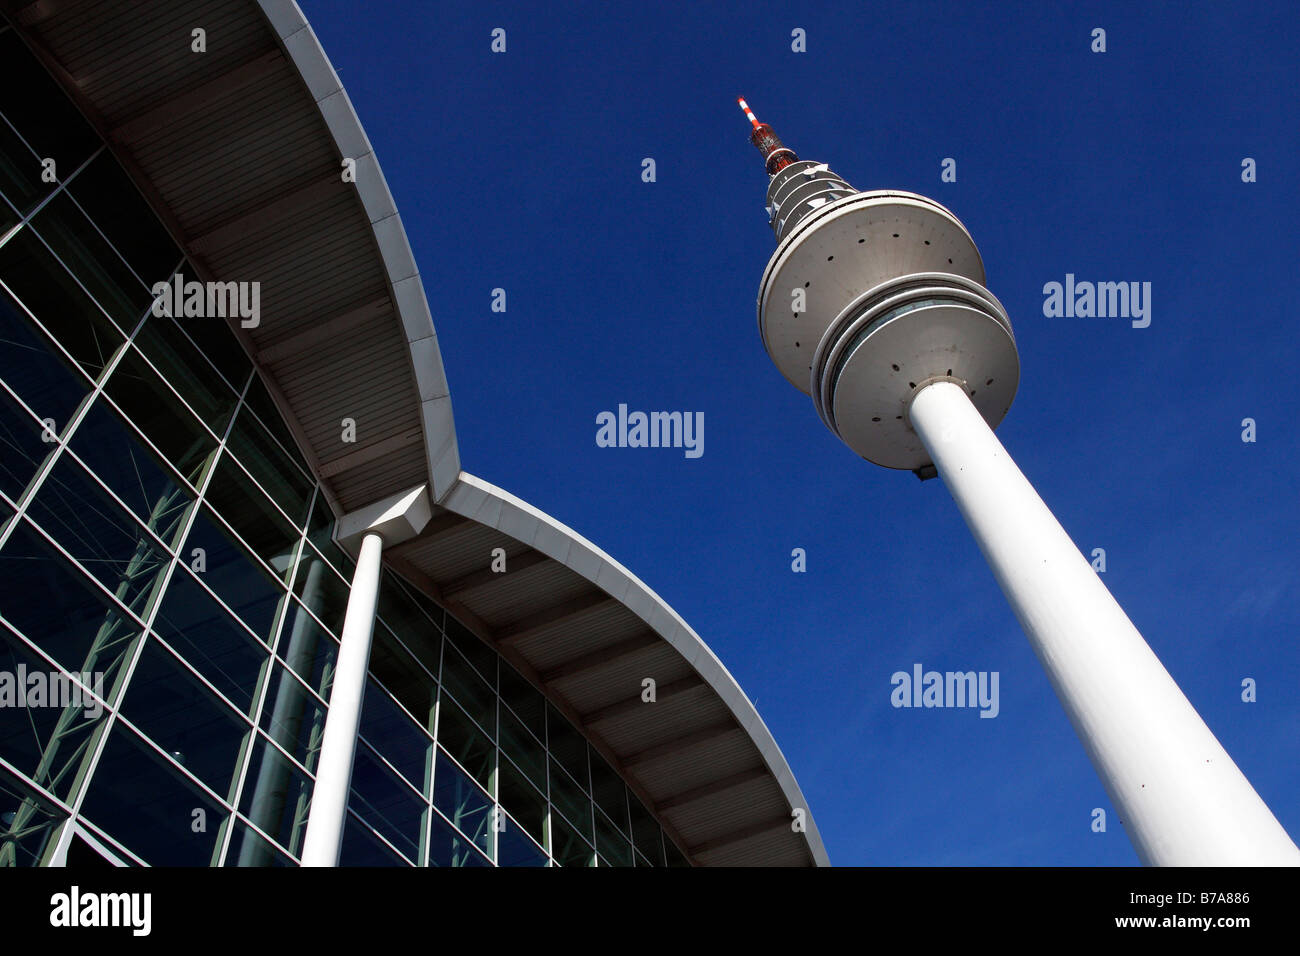 Tele-Michel, the Hamburg telecommunications or television tower, also called the Heinrich-Hertz-Turm, next to the - Stock Image